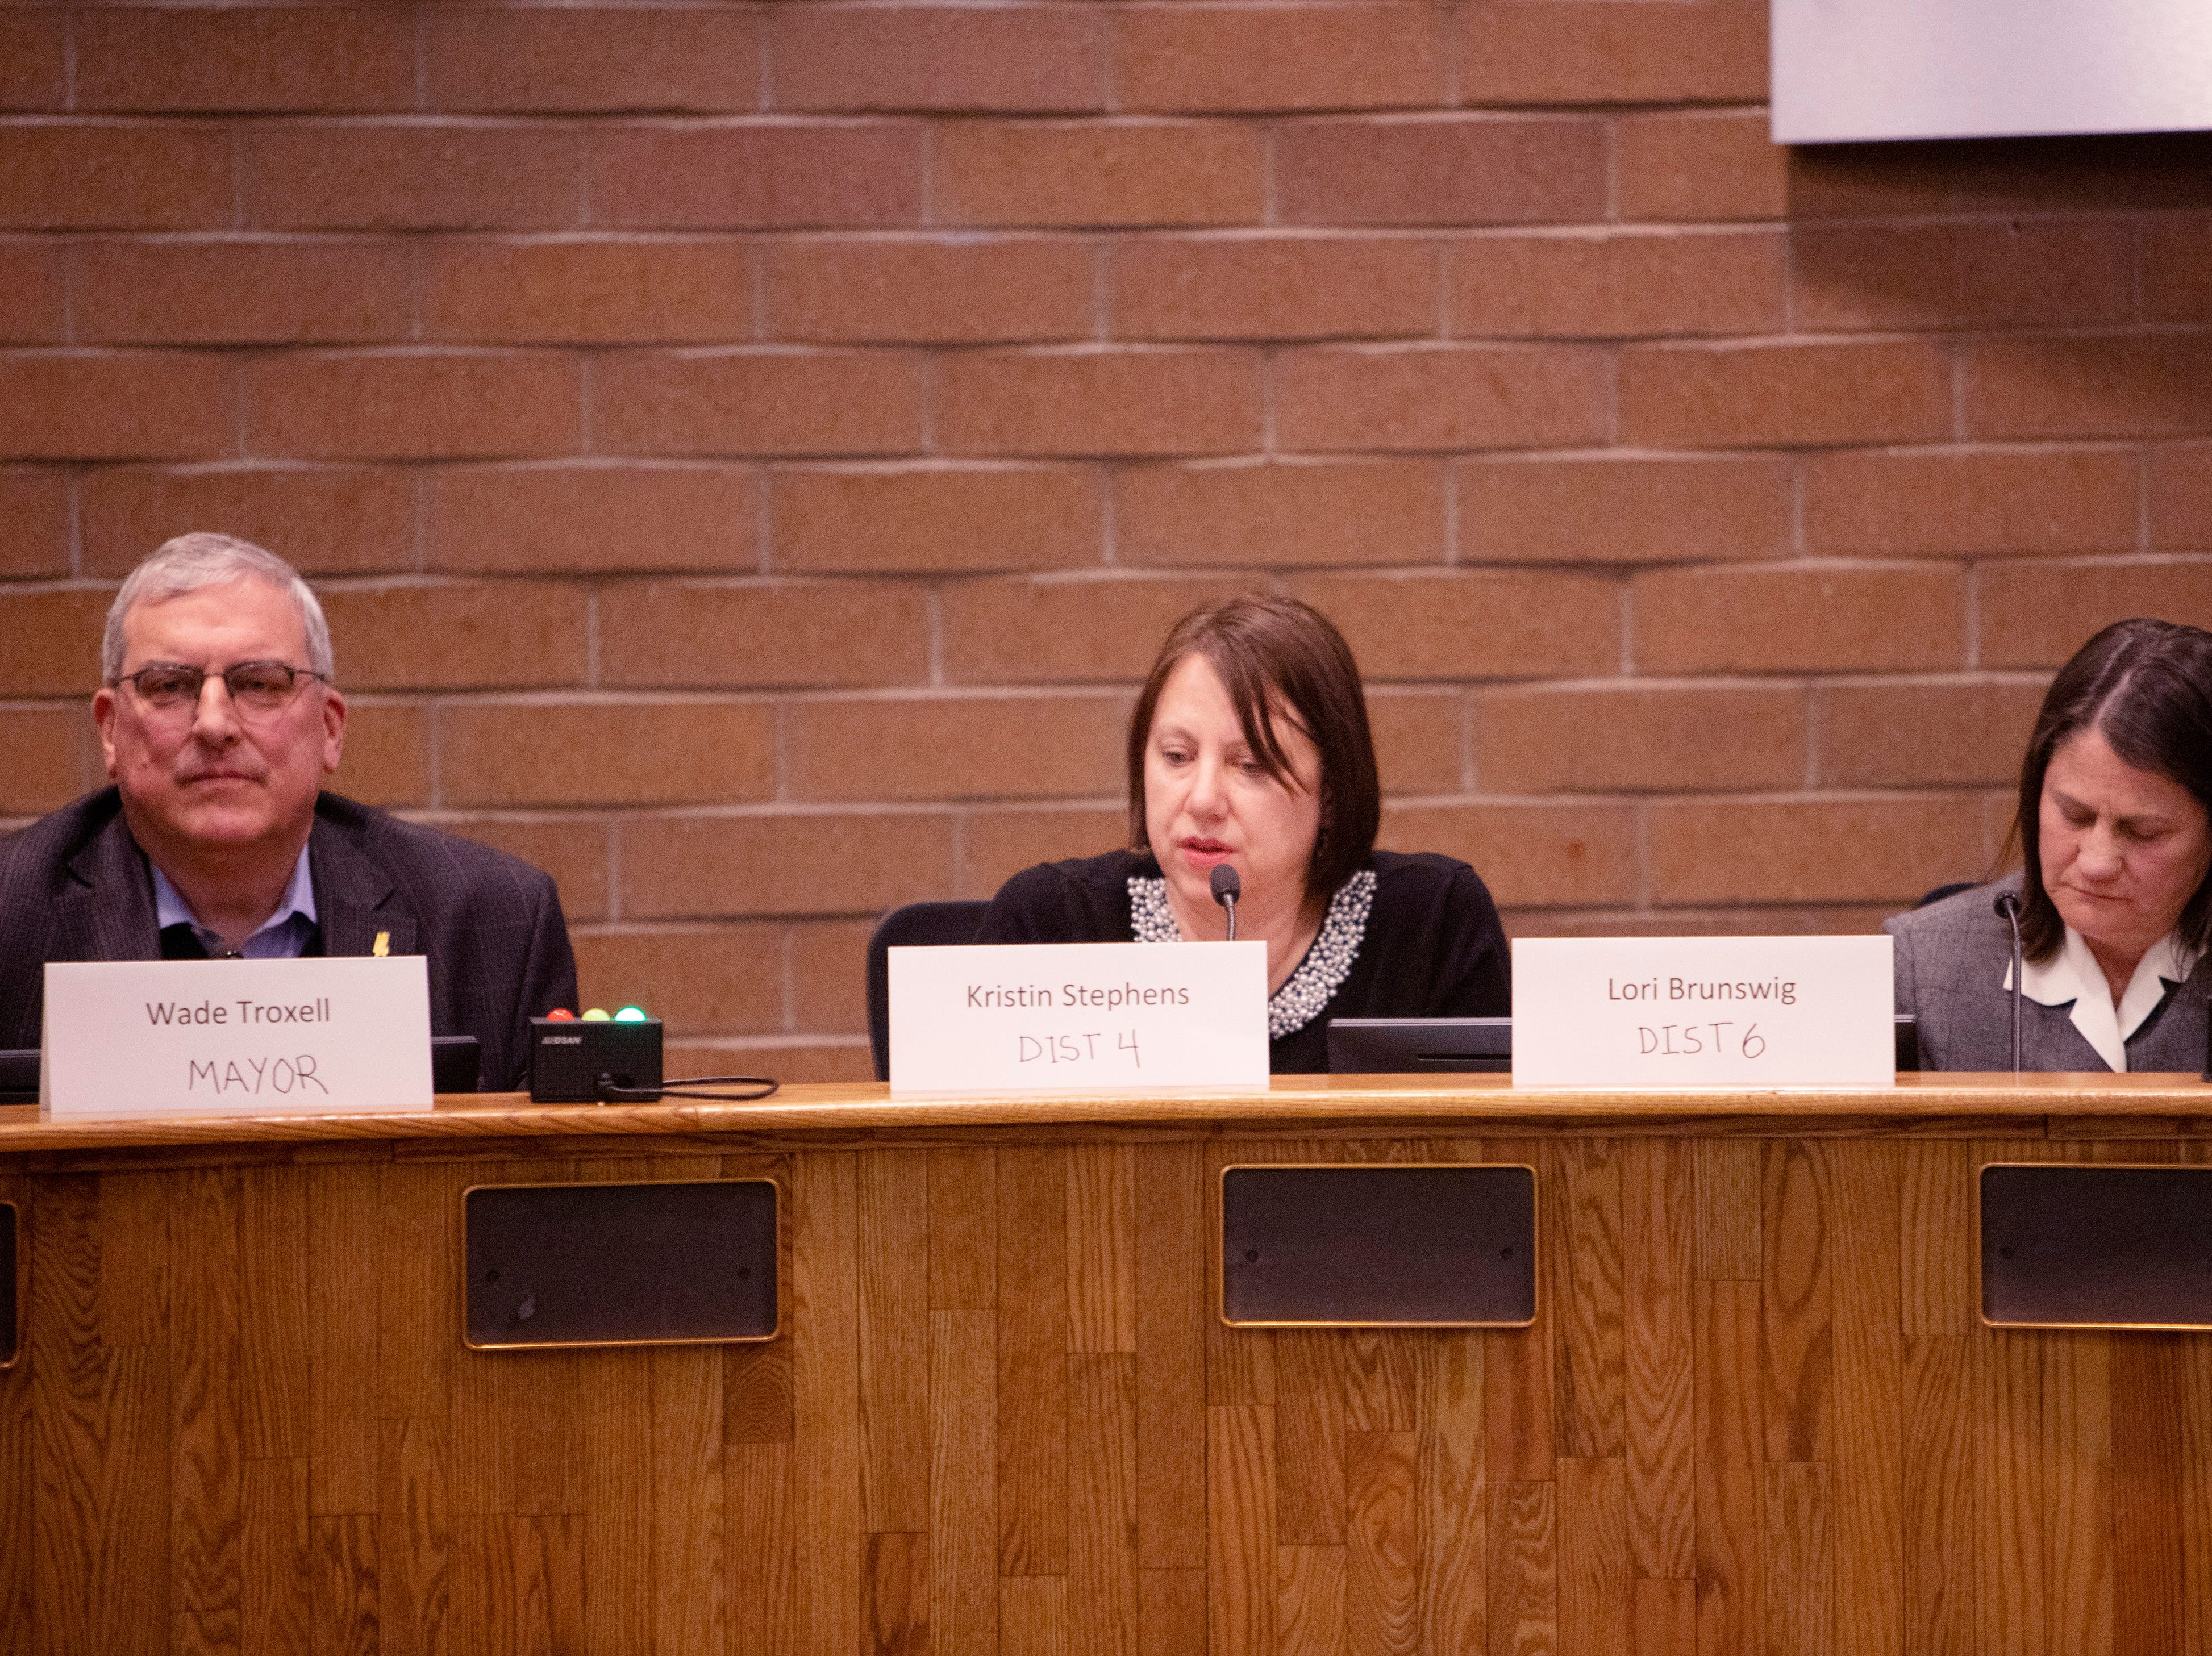 City Council member Kristin Stephens speaks during the candidate forum hosted by The League of  Women Voters of Larimer County at City Hall on March 6.